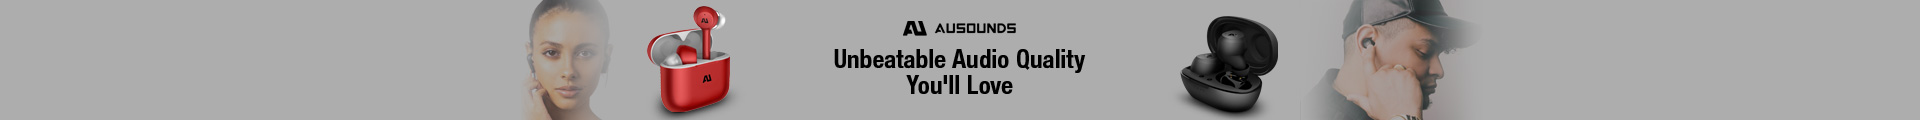 Unbeatable Audio Quality You'll Love